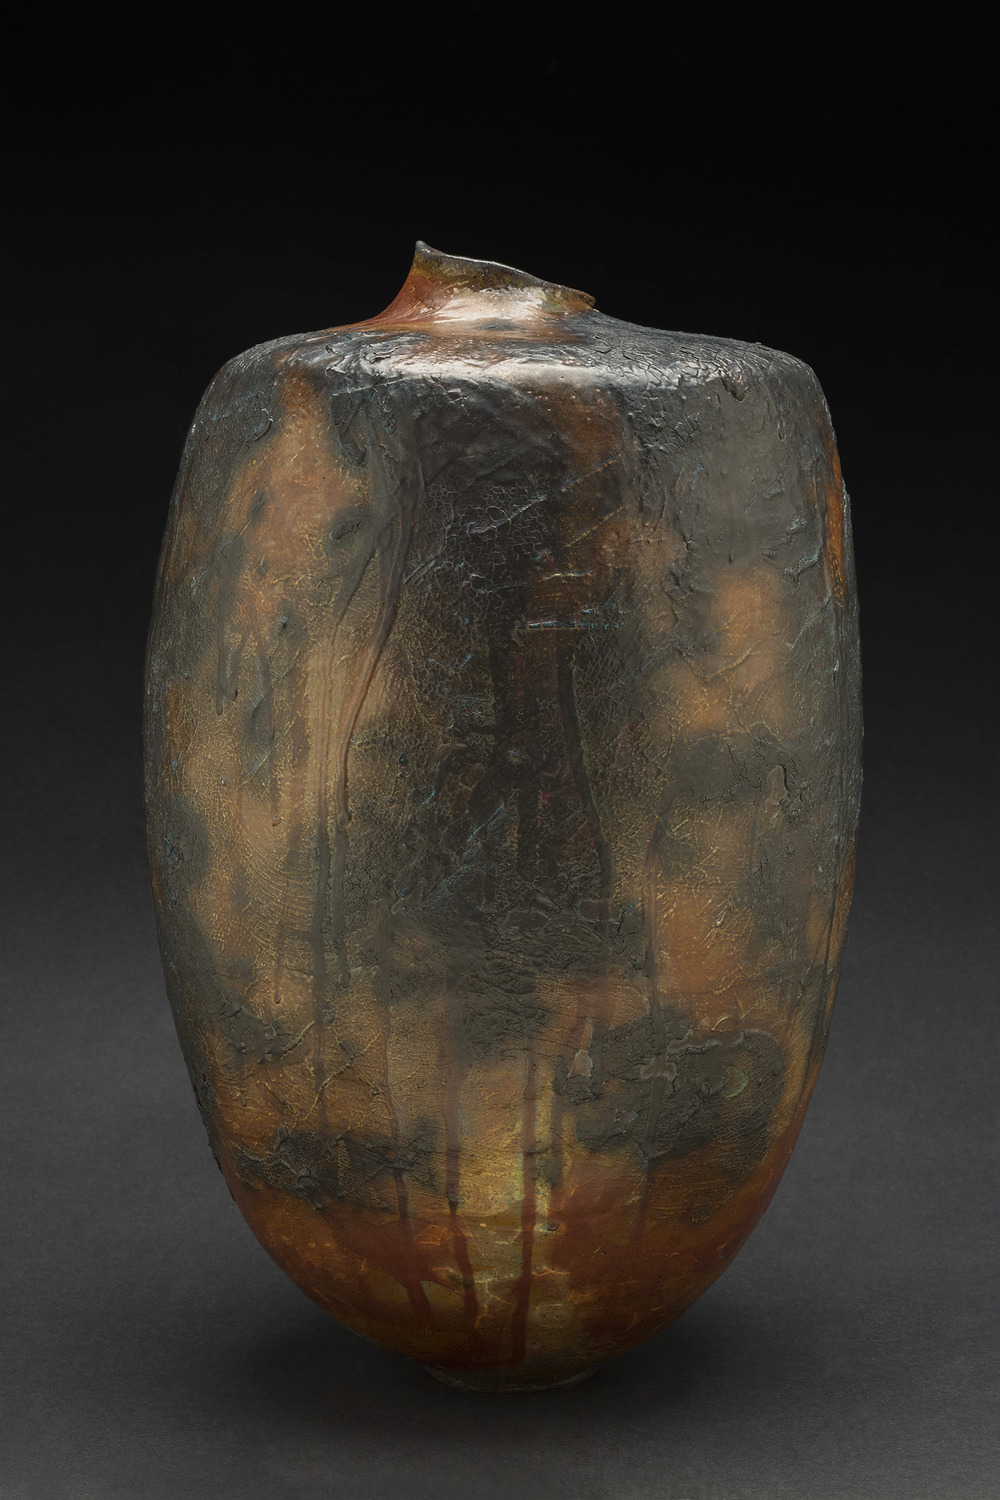 Melanie Ferguson    Clouds on Fire  , 2014 Handbuilt stoneware, kohiki slip, copper black oxide stain, flashing slip. Soda fired to cone 11. 15 x 9 x 9 inches 38.1 x 22.9 x 22.9 cm MFe 16